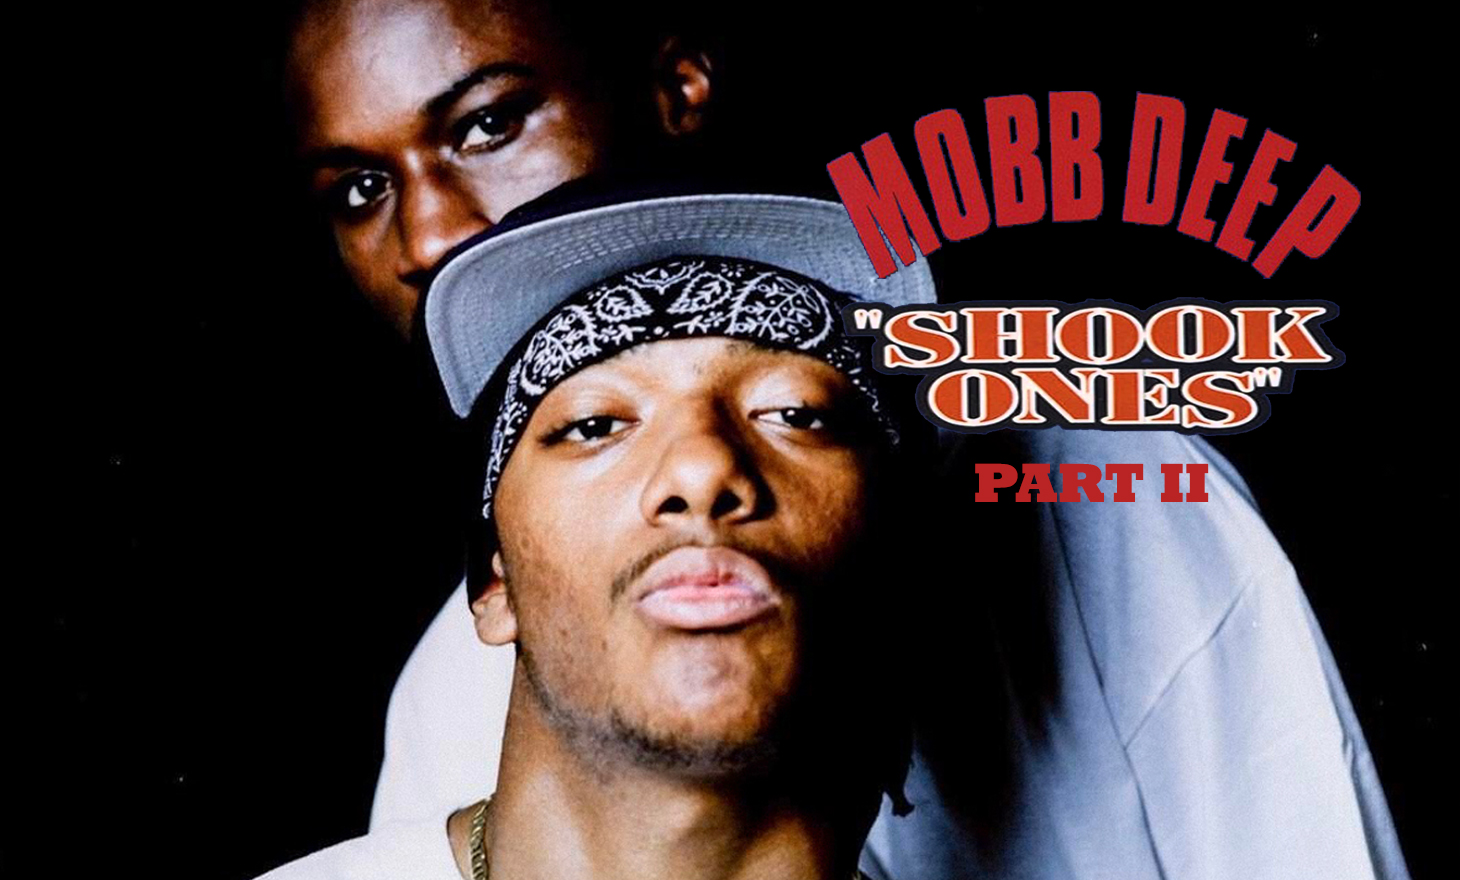 Mobb Deep(モブ・ディープ):Shook Ones Part II